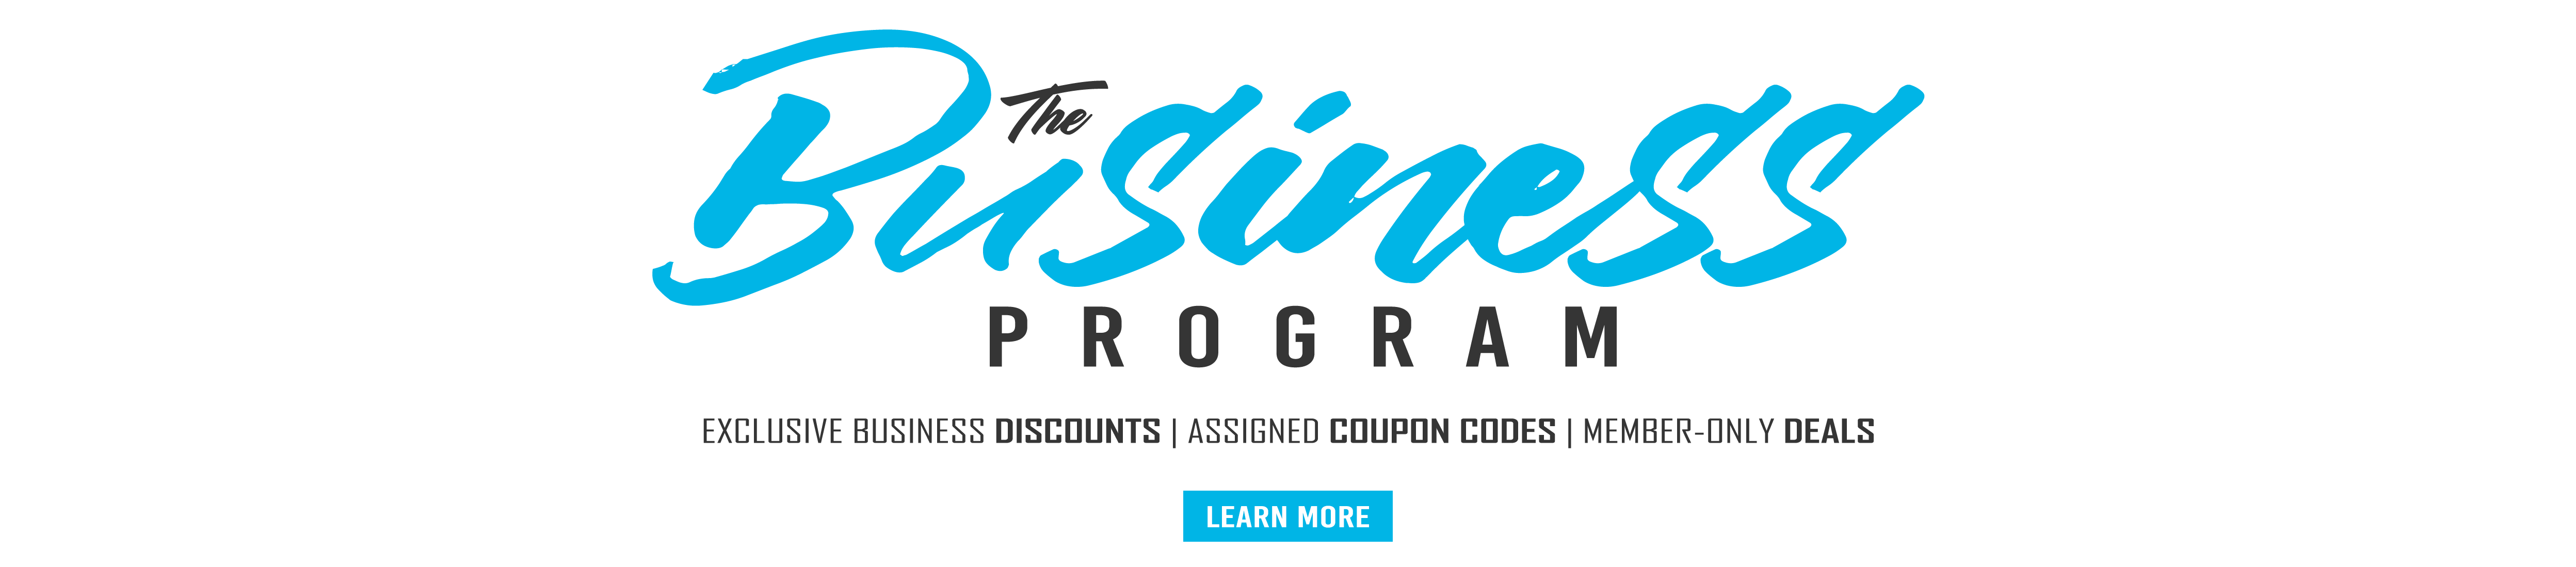 the-business-program-page-banner-big.png